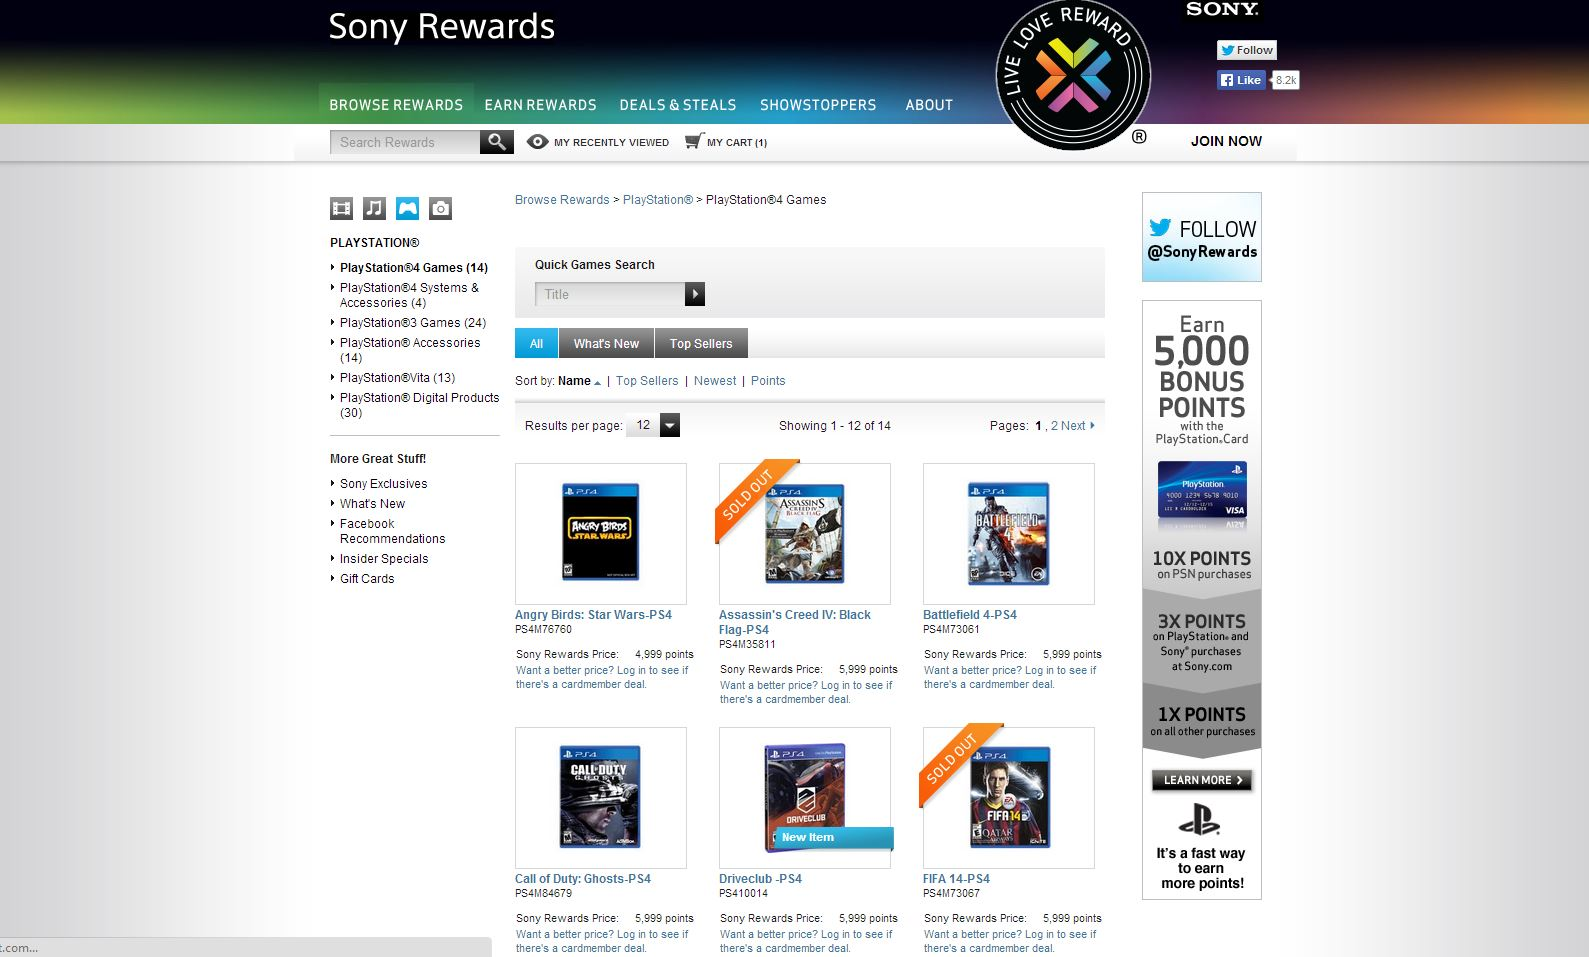 Driveclub Sony Rewards